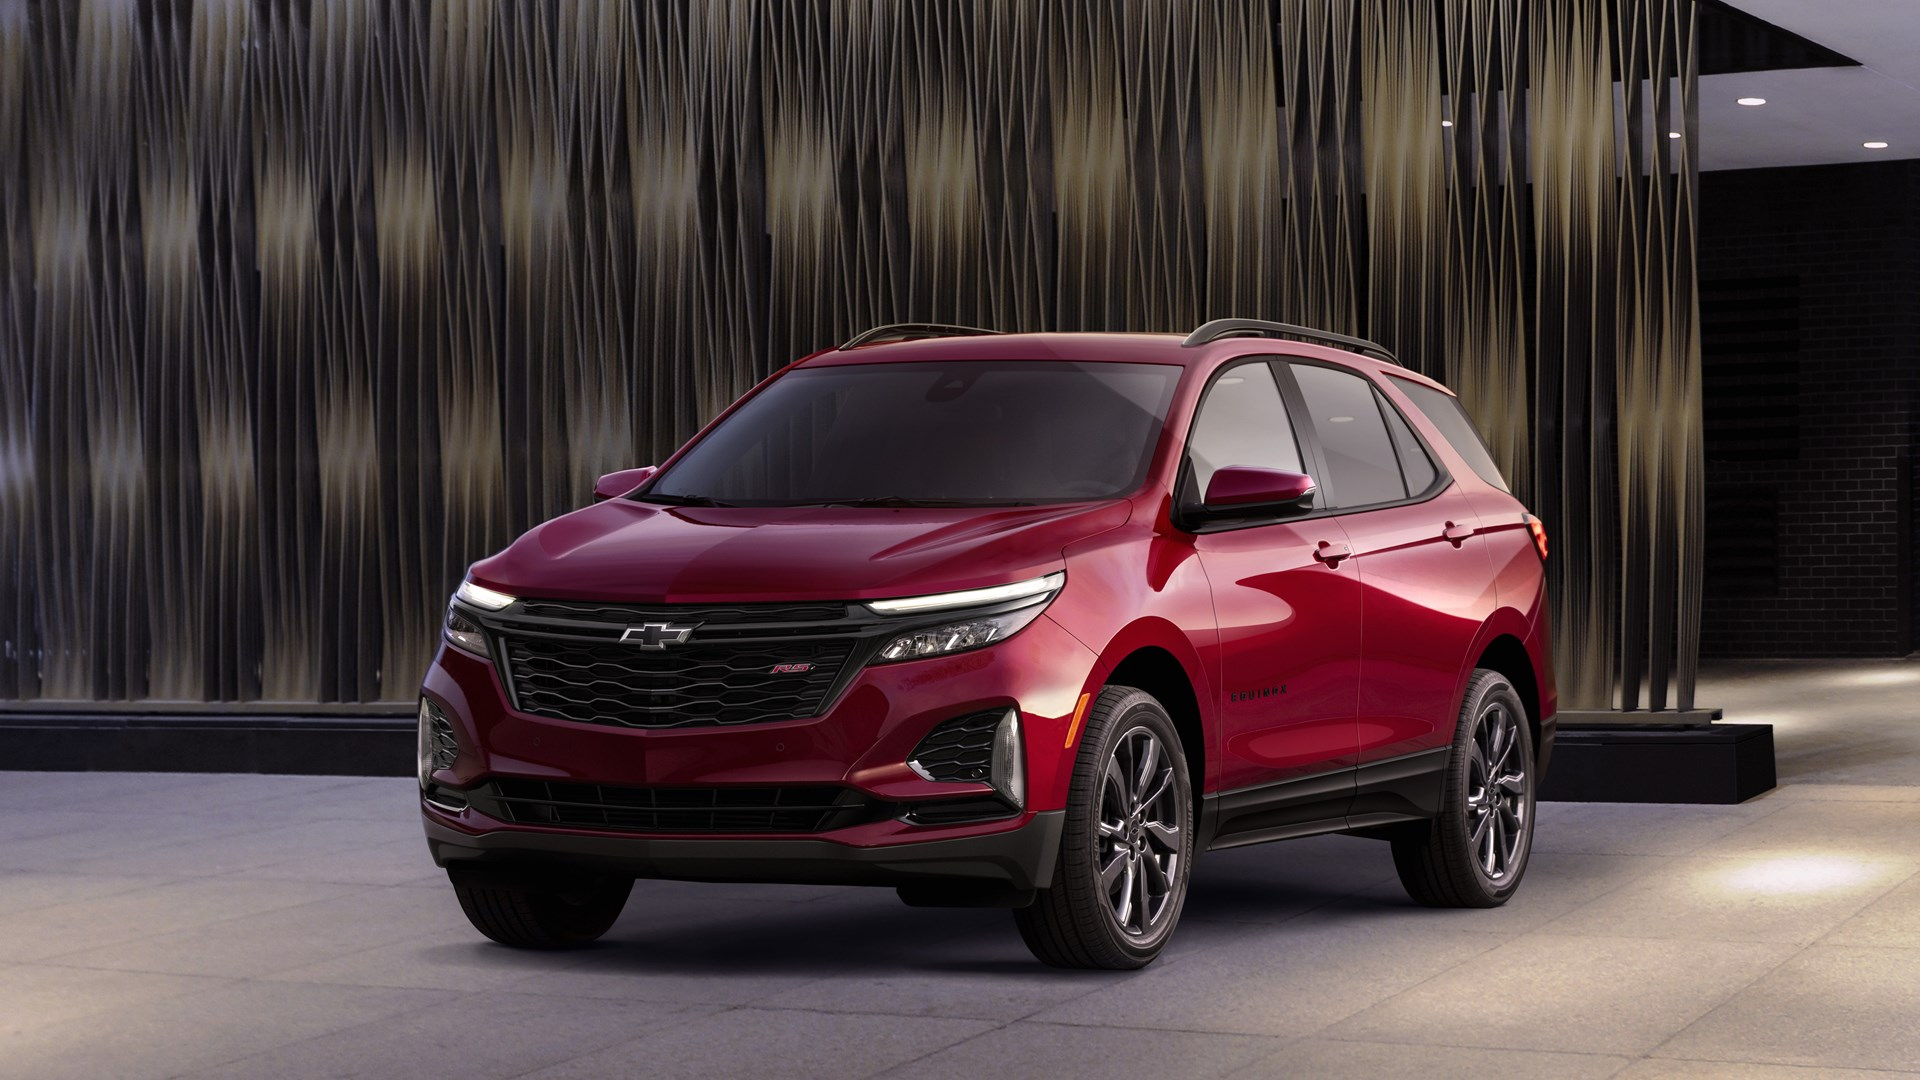 2021 Chevy Equinox Gets Facelift And New Rs Trim | Autotrader.ca 2021 Chevy Equinox Premier 2.0, Msrp, Awd